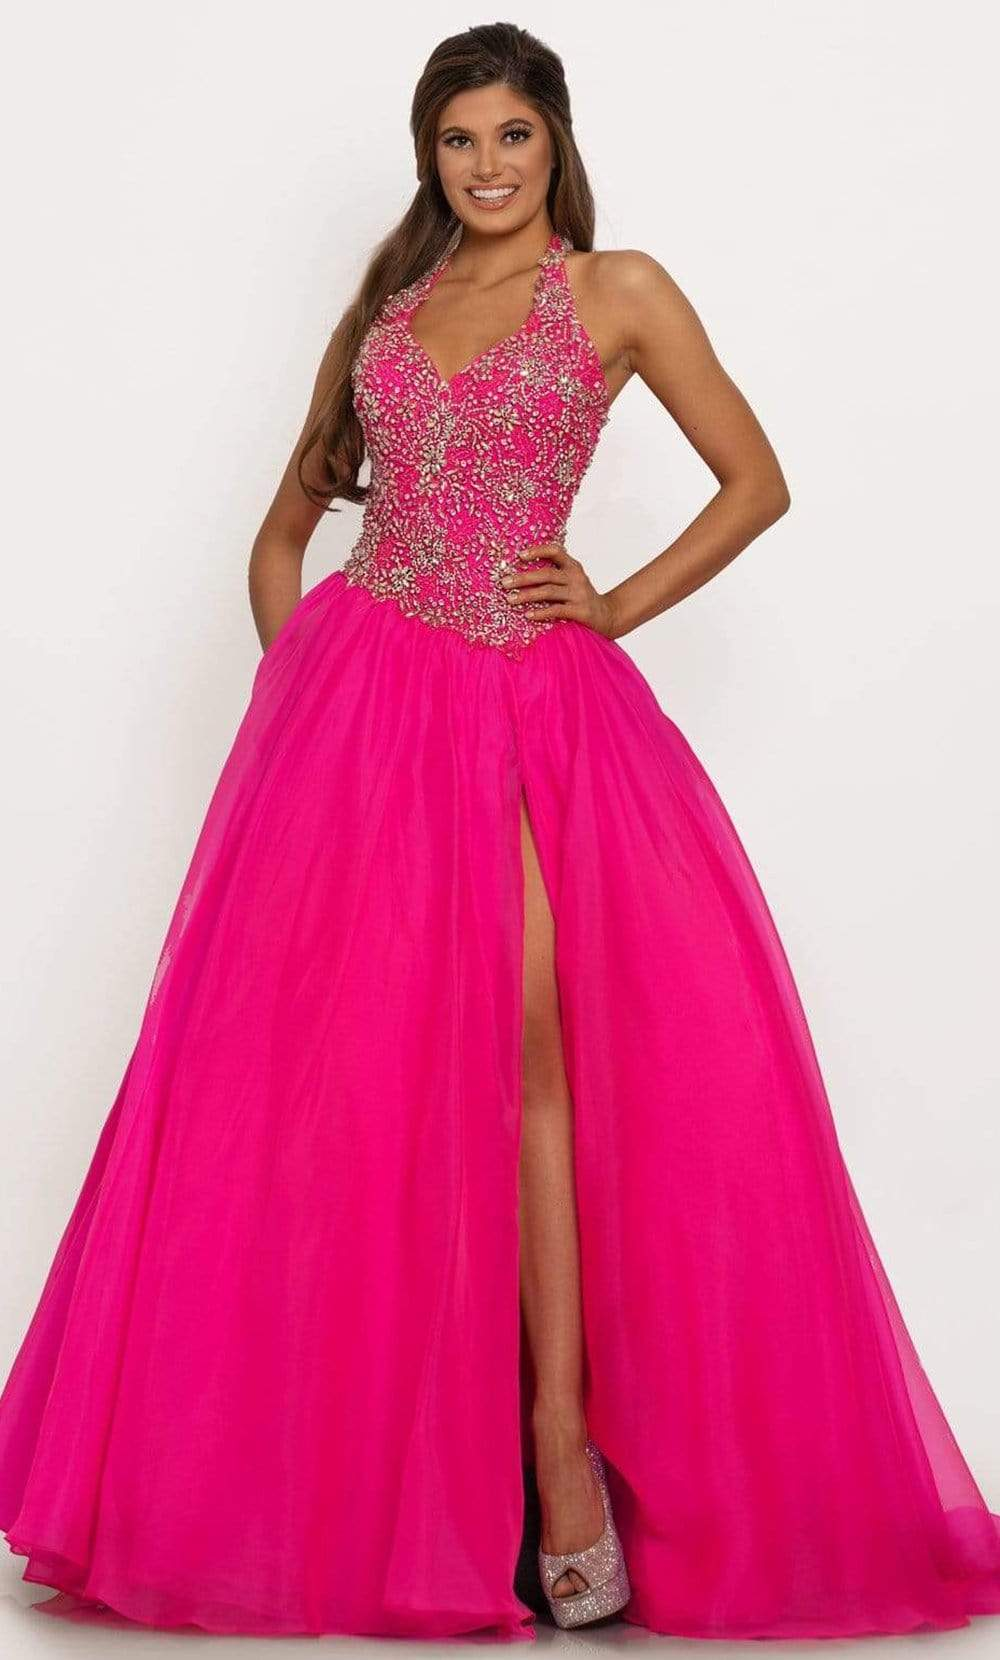 Johnathan Kayne - 2227 Bedazzled Halter Neck Ballgown from Johnathan Kayne